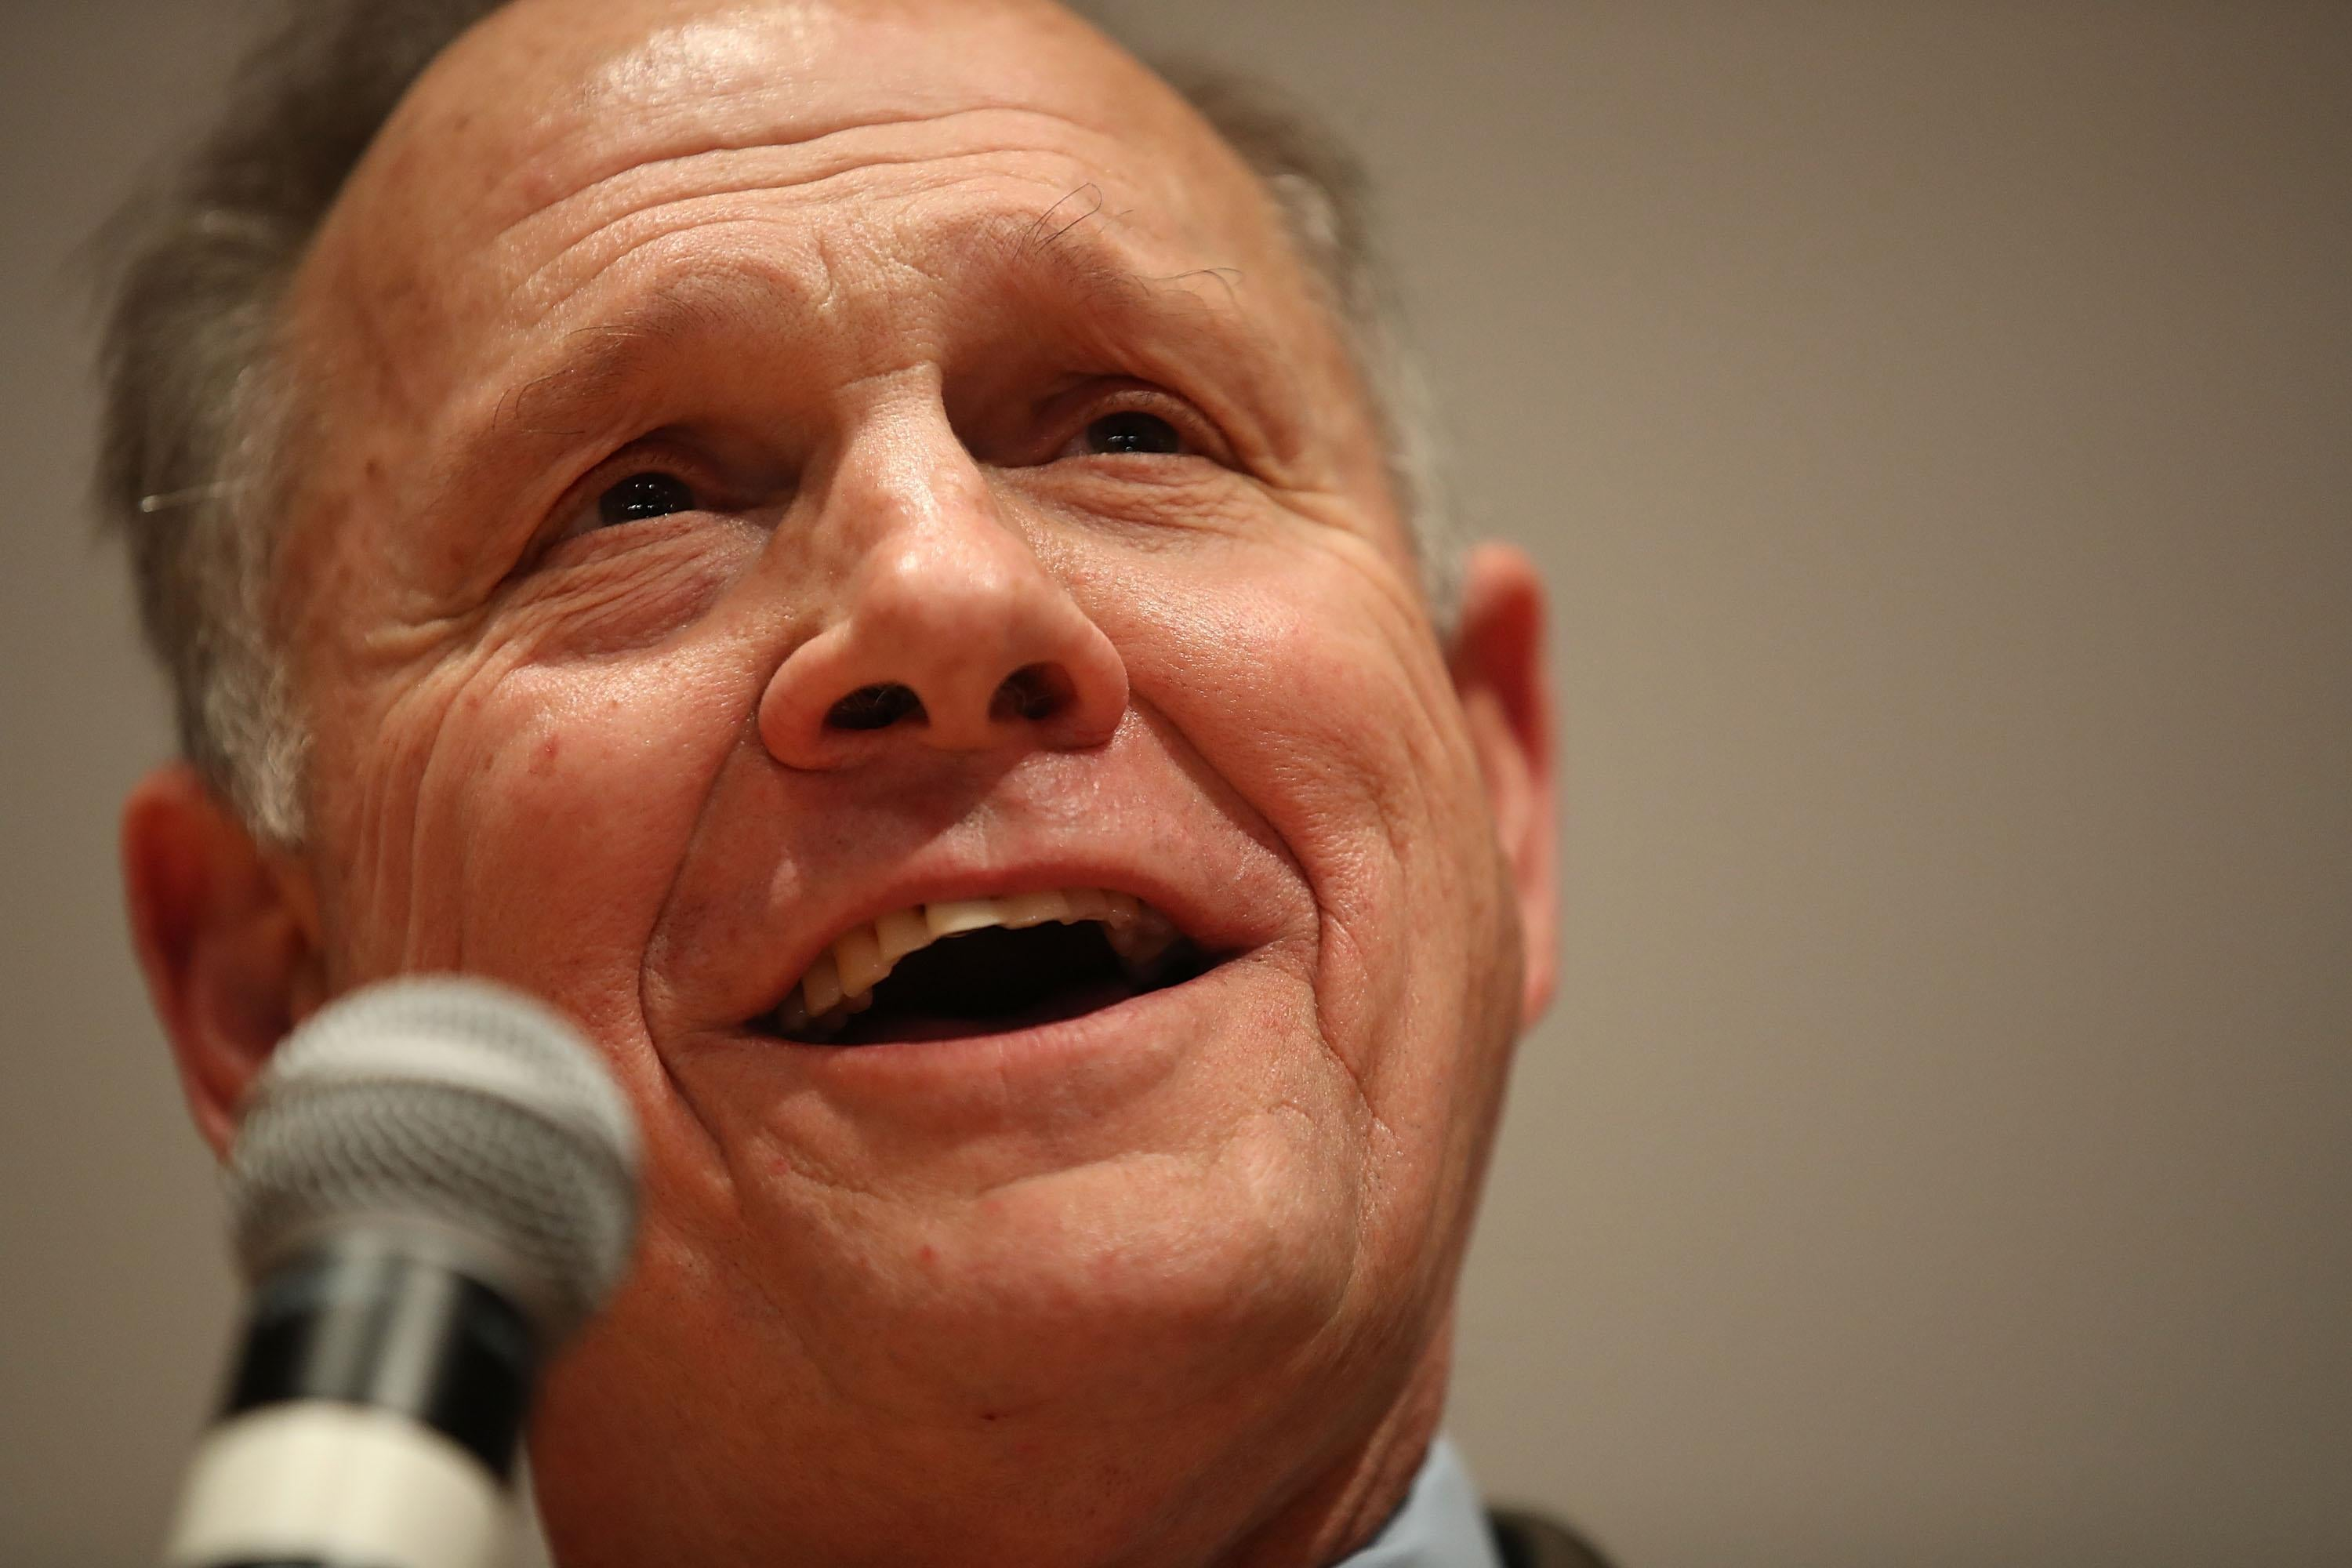 Republican Senatorial candidate Roy Moore speaks about the race against his Democratic opponent Doug Jones is too close and there will be a recount during his election night party in the RSA Activity Center on December 12, 2017 in Montgomery, Alabama. The candidates are running in a special election to replace Attorney General Jeff Sessions in the U.S. Senate.  (Photo by Joe Raedle/Getty Images)